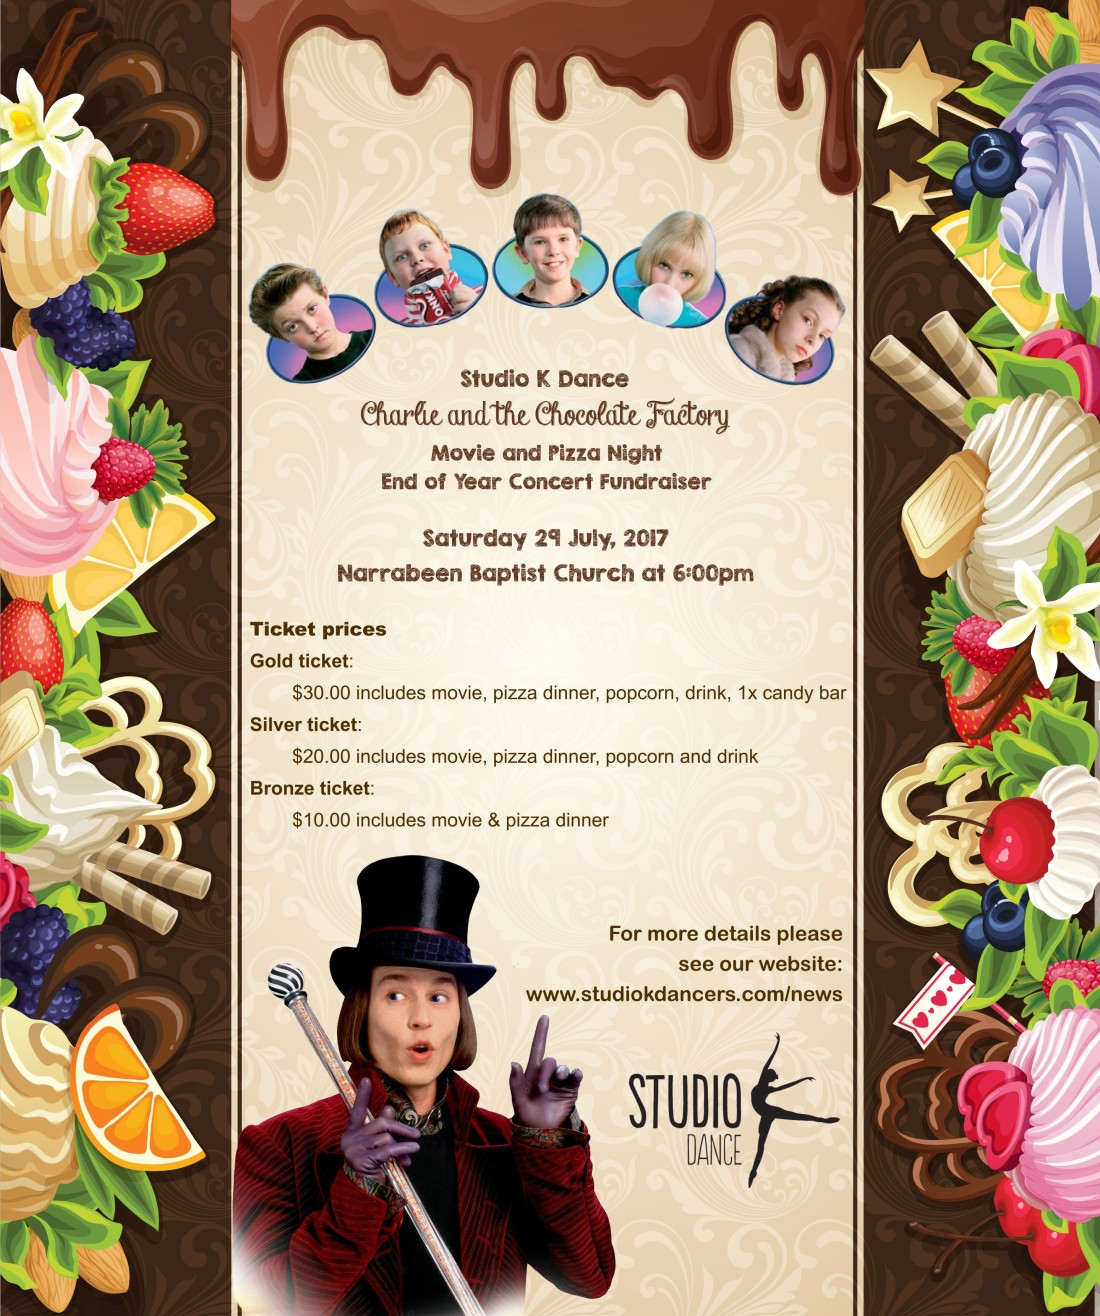 Charlie_and_the_Chocolate_Factory (5)